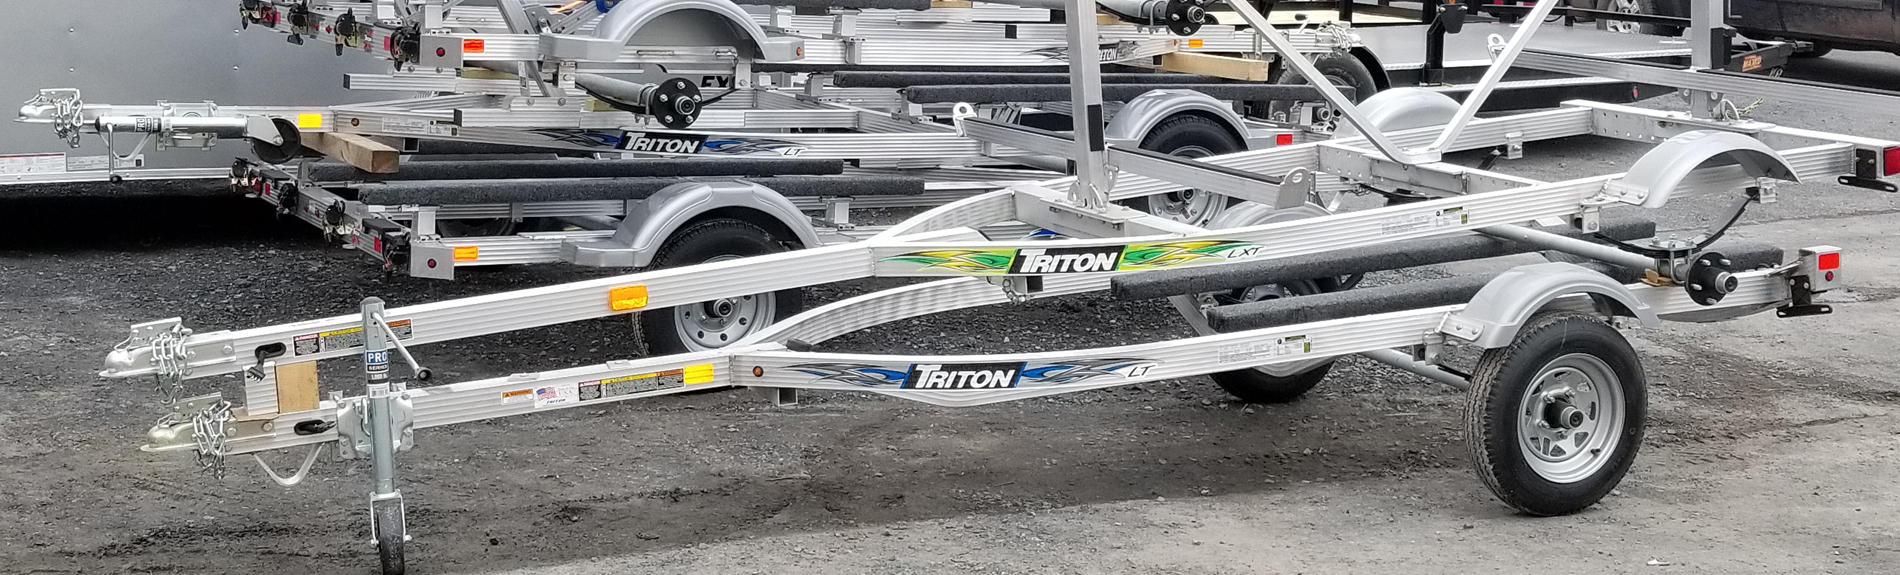 Home Russ Auto And Trailer Dealer Utility Cargo Sales Triton Wiring Harness Line Jet Ski Kayak Atv All In Stock